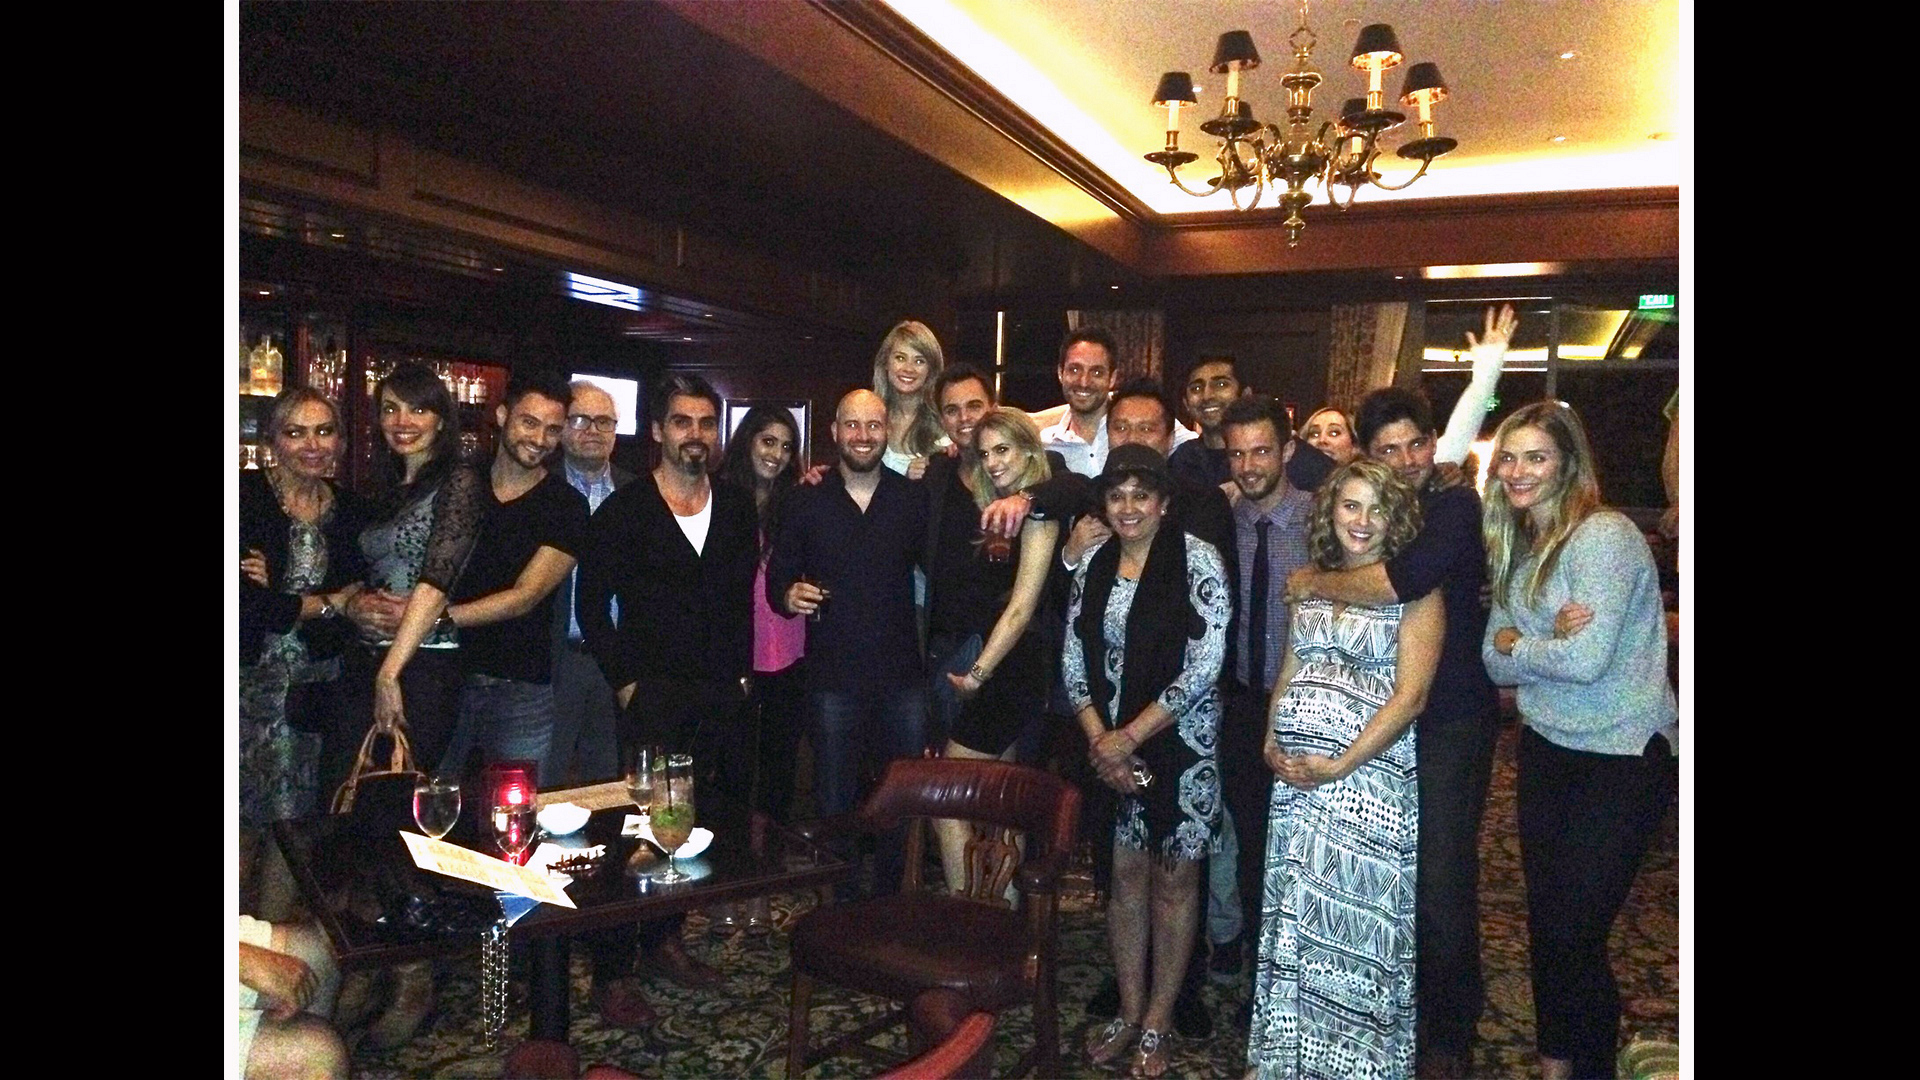 Darin Brooks rings in his 30th birthday surrounded by friends.